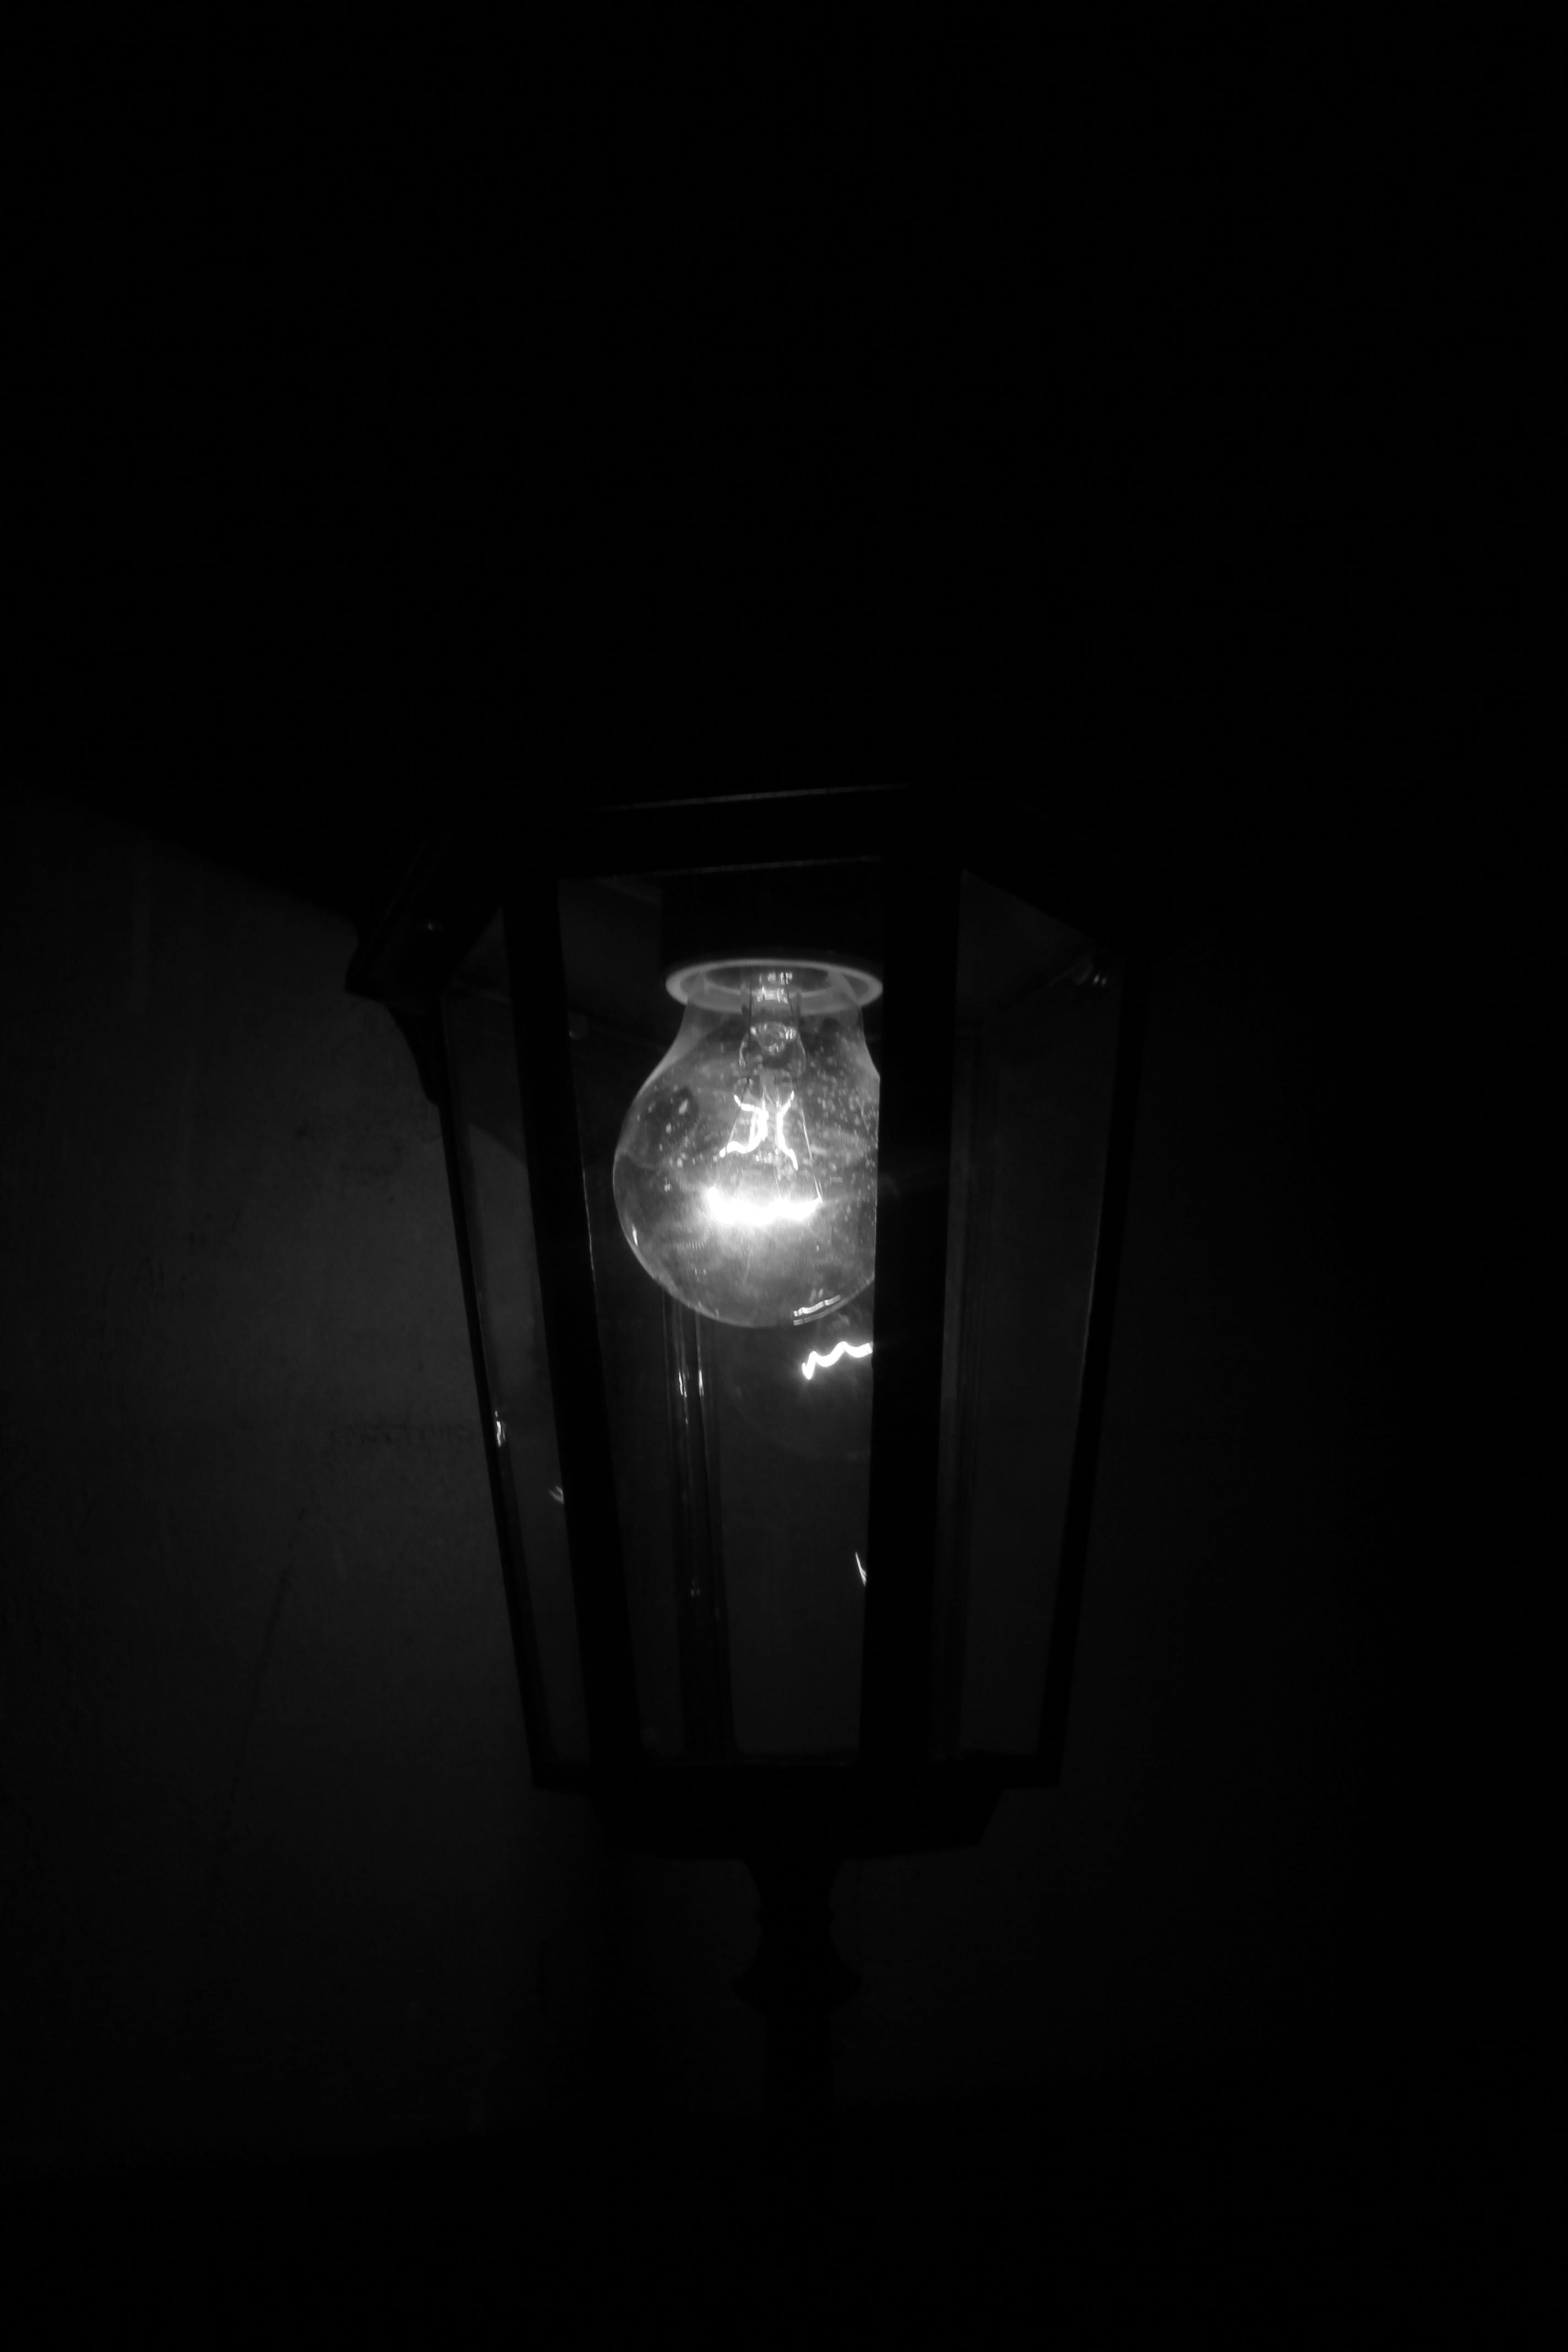 Free stock photo of black and white, lamp